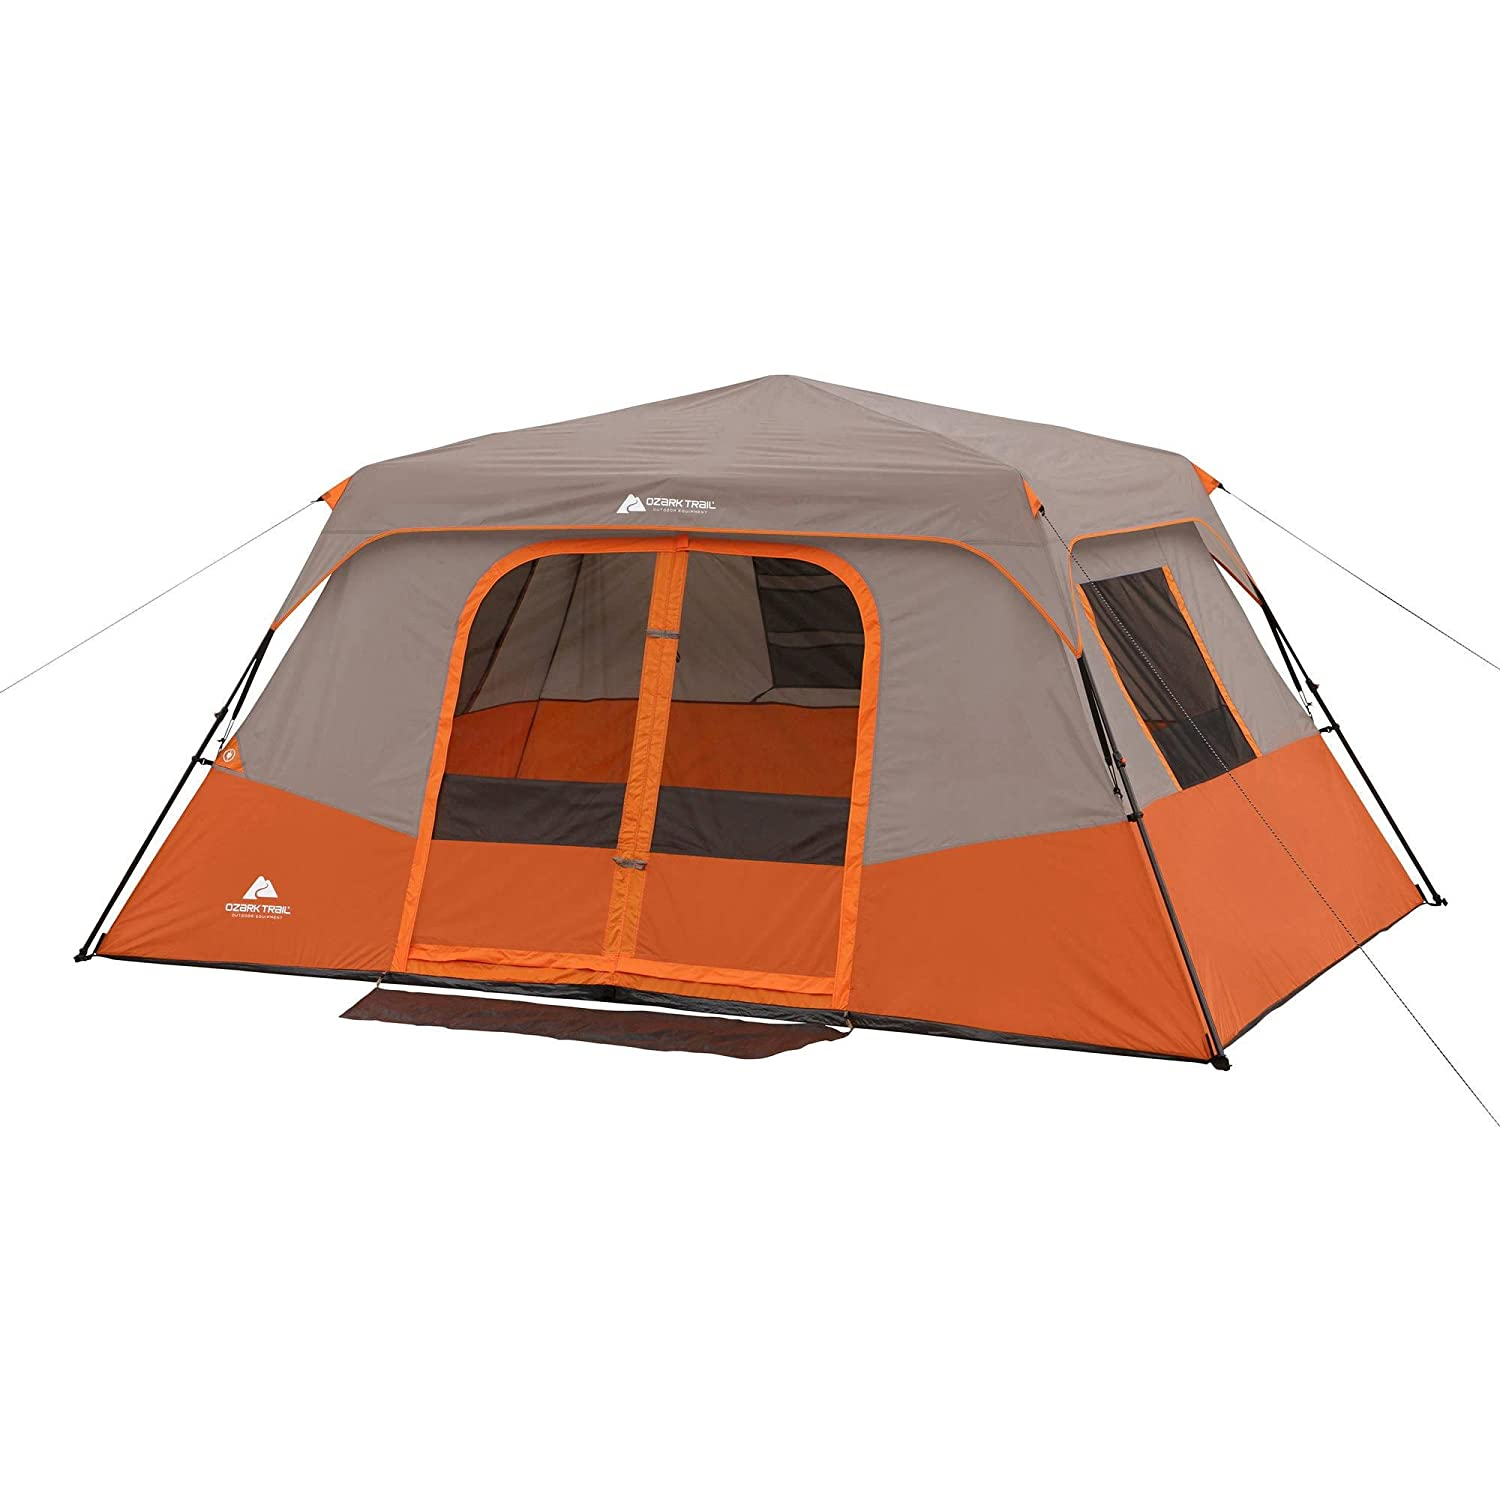 Amazon.com  Ozark Trail 8-Person Instant Cabin Tent  Family Tents  Sports u0026 Outdoors  sc 1 st  Amazon.com & Amazon.com : Ozark Trail 8-Person Instant Cabin Tent : Family ...